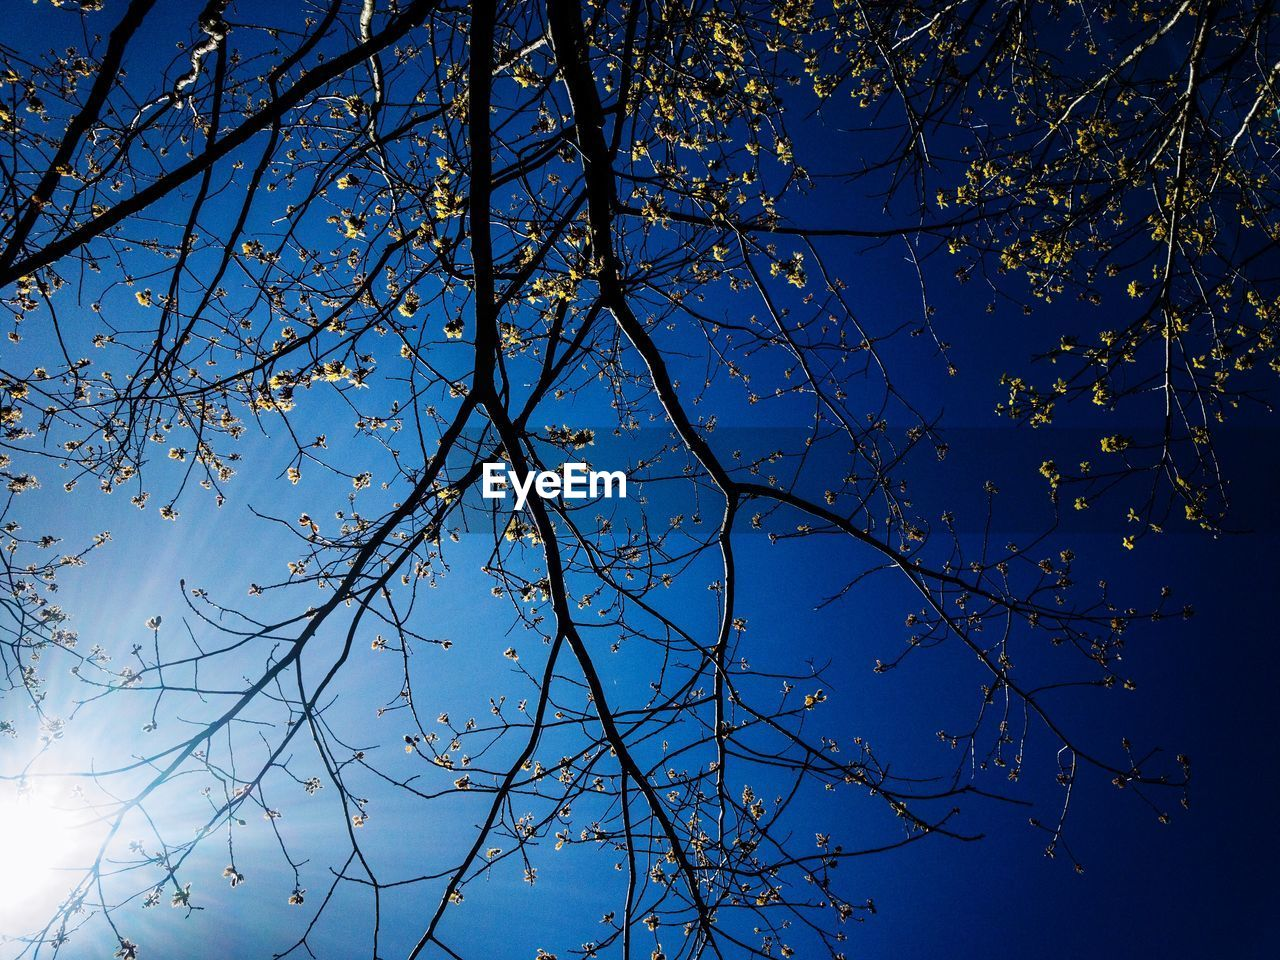 tree, sky, branch, plant, low angle view, beauty in nature, nature, no people, blue, growth, clear sky, tranquility, day, outdoors, bare tree, sunlight, scenics - nature, silhouette, autumn, tree canopy, spring